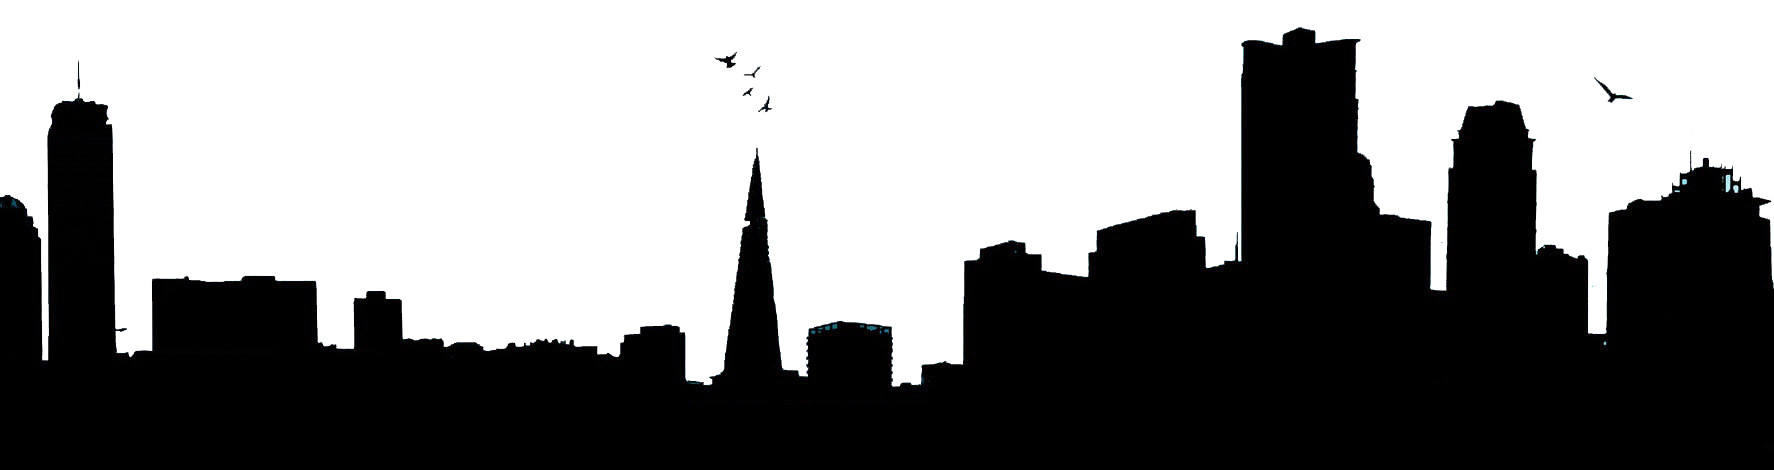 Hong kong skyline silhouette. Future clipart future city